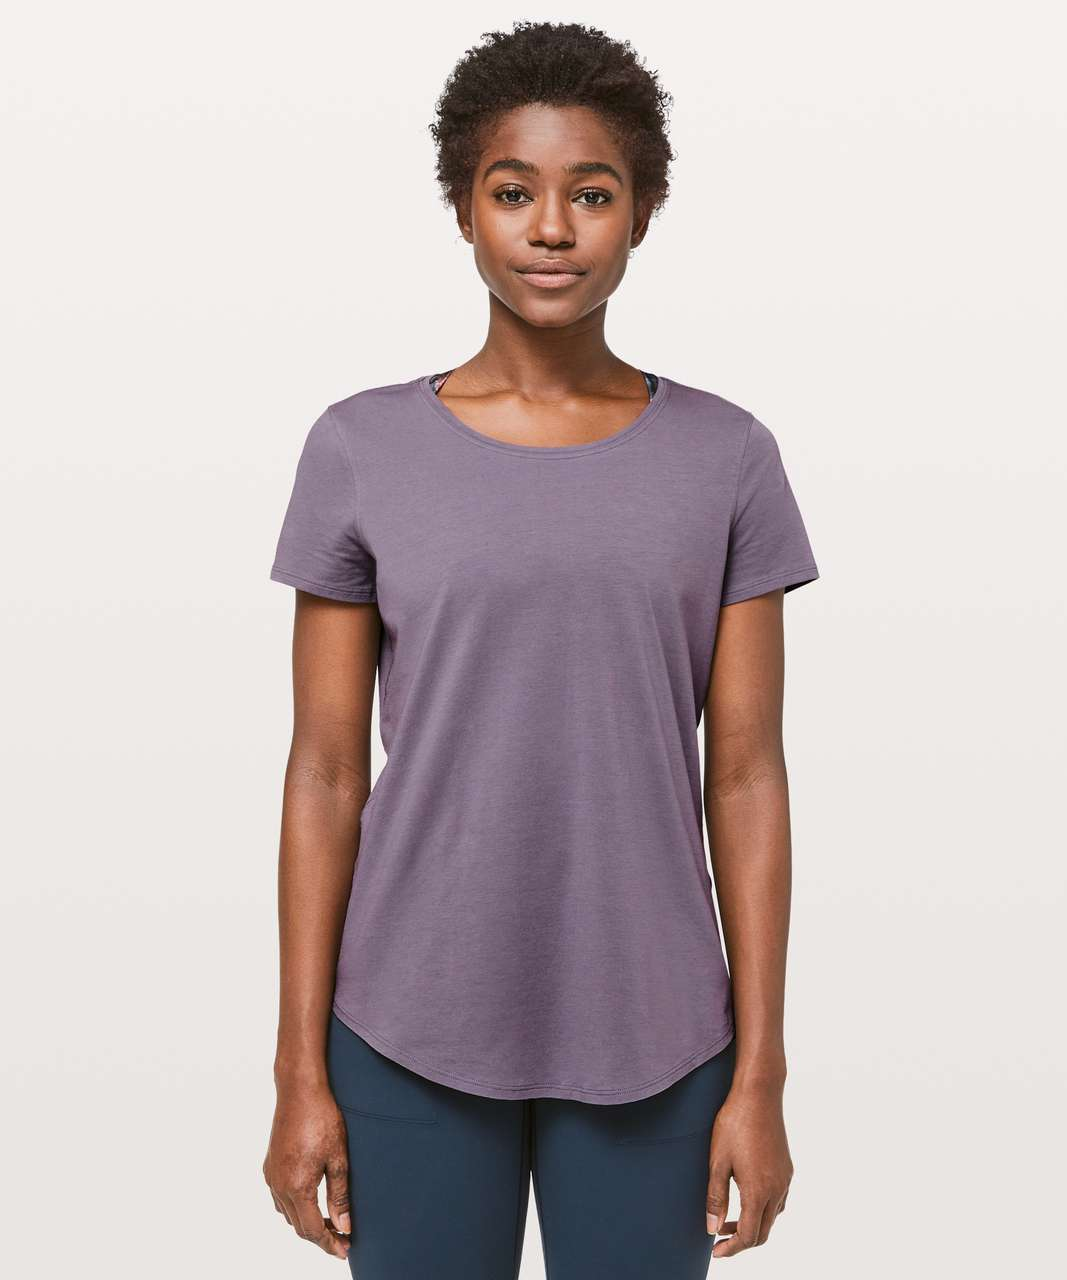 Lululemon Love Crew III - Graphite Purple